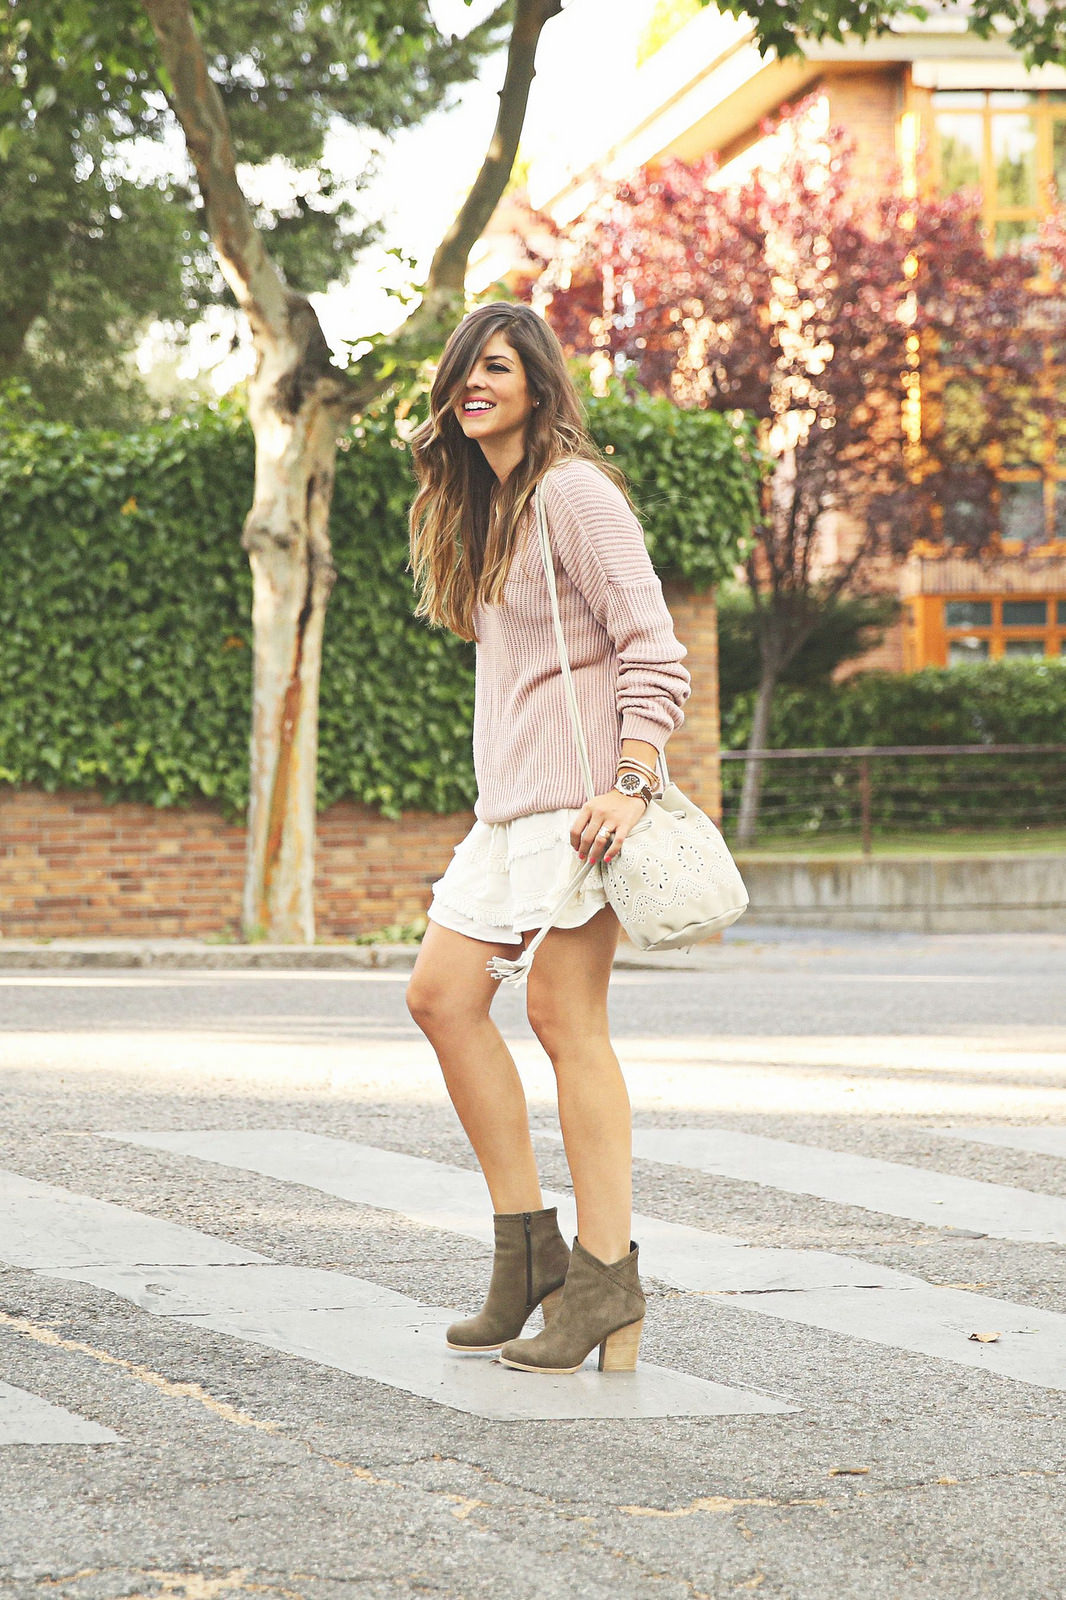 Natalia Cabezas in a simple neutral spring outfit. Cosy pastel pink sweater, creme mini skirt and suede booties complete the outfit perfectly Sweater: Brandy Melville, Skirt: Buylevard, Boots: Mustt